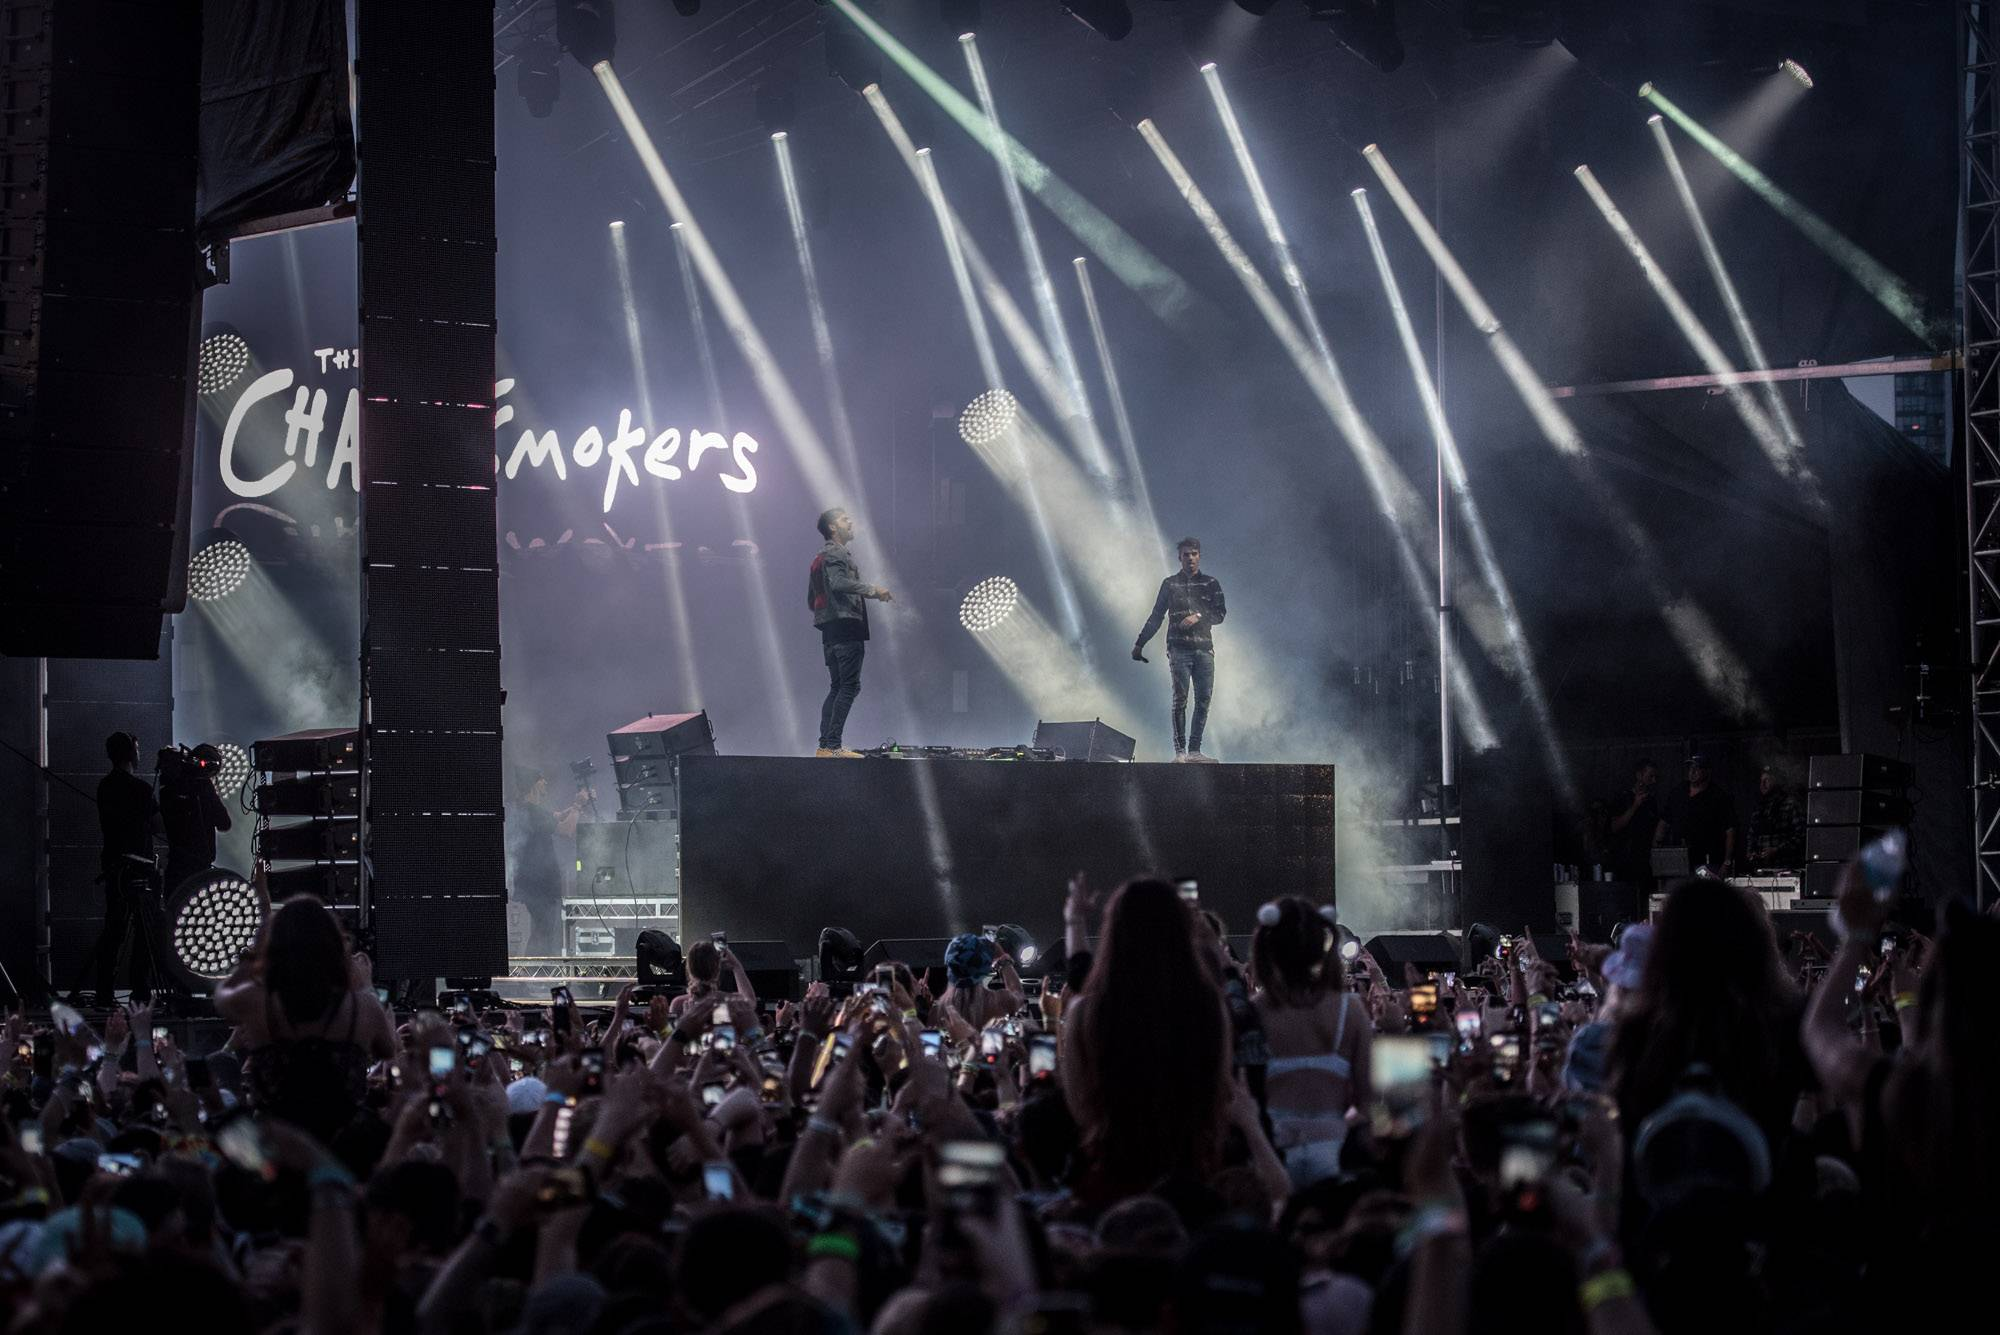 Chainsmokers at Fvded in the Park, Surrey, July 8 2017. Jason Martin photo.